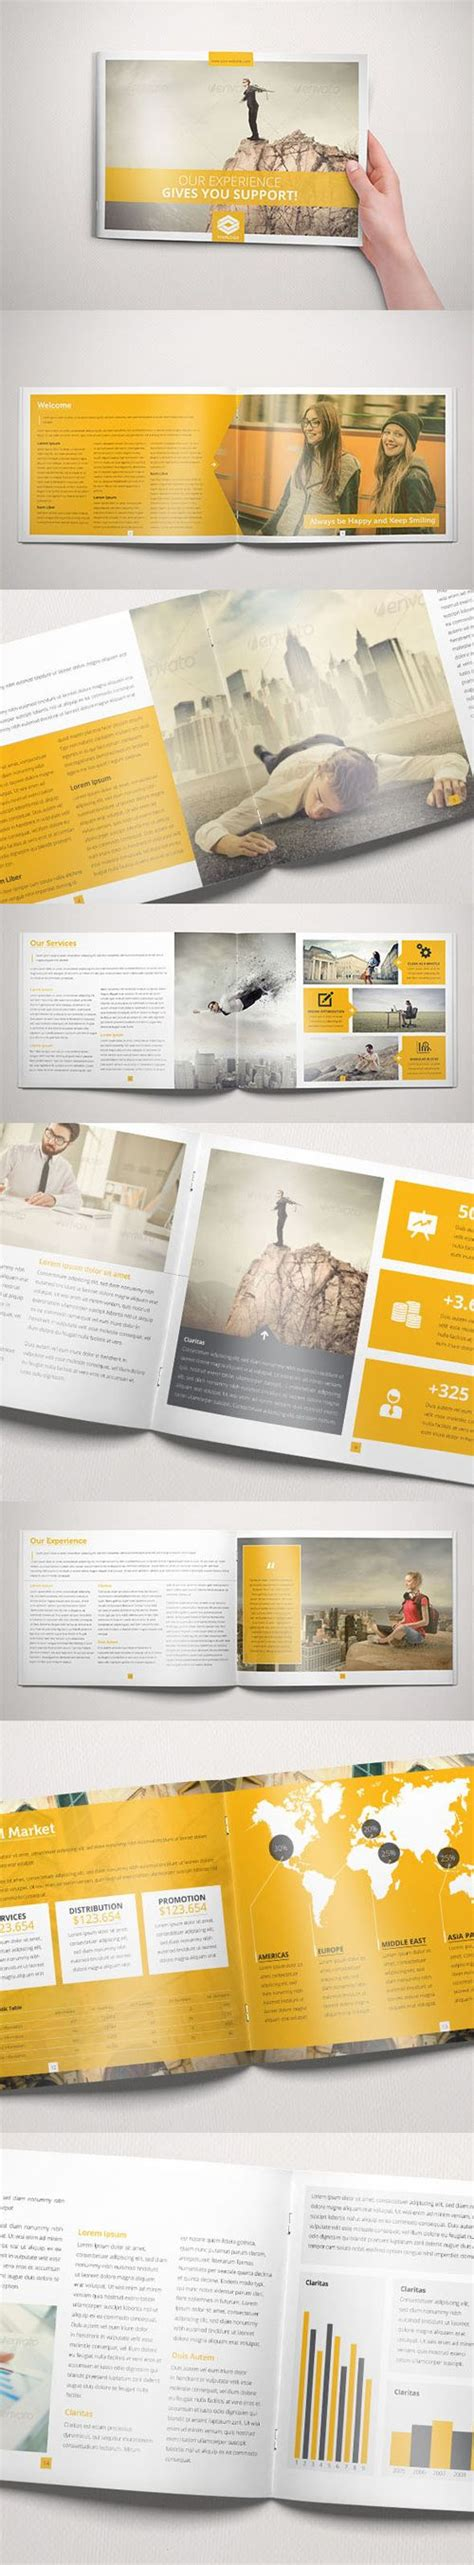 193 best brochure design layout images on pinterest 193 best brochure design layout images on pinterest